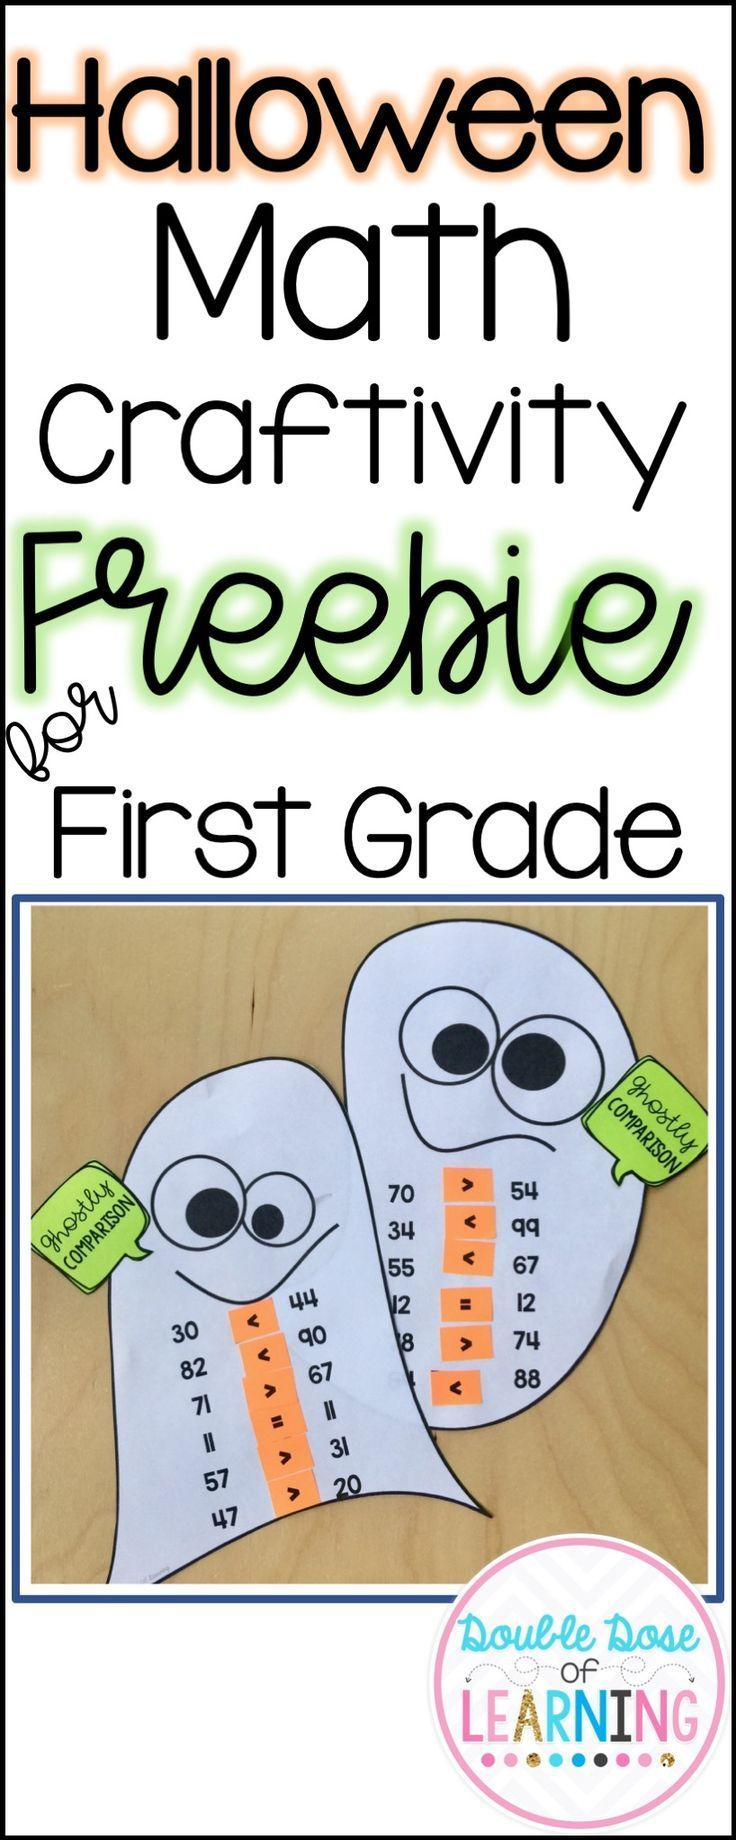 First Graders Love To Have Spooky Fun In October And We Made It Easy For You To Give Your Students Math Practic Math Crafts Fall Math Halloween Math Craftivity [ 1840 x 736 Pixel ]